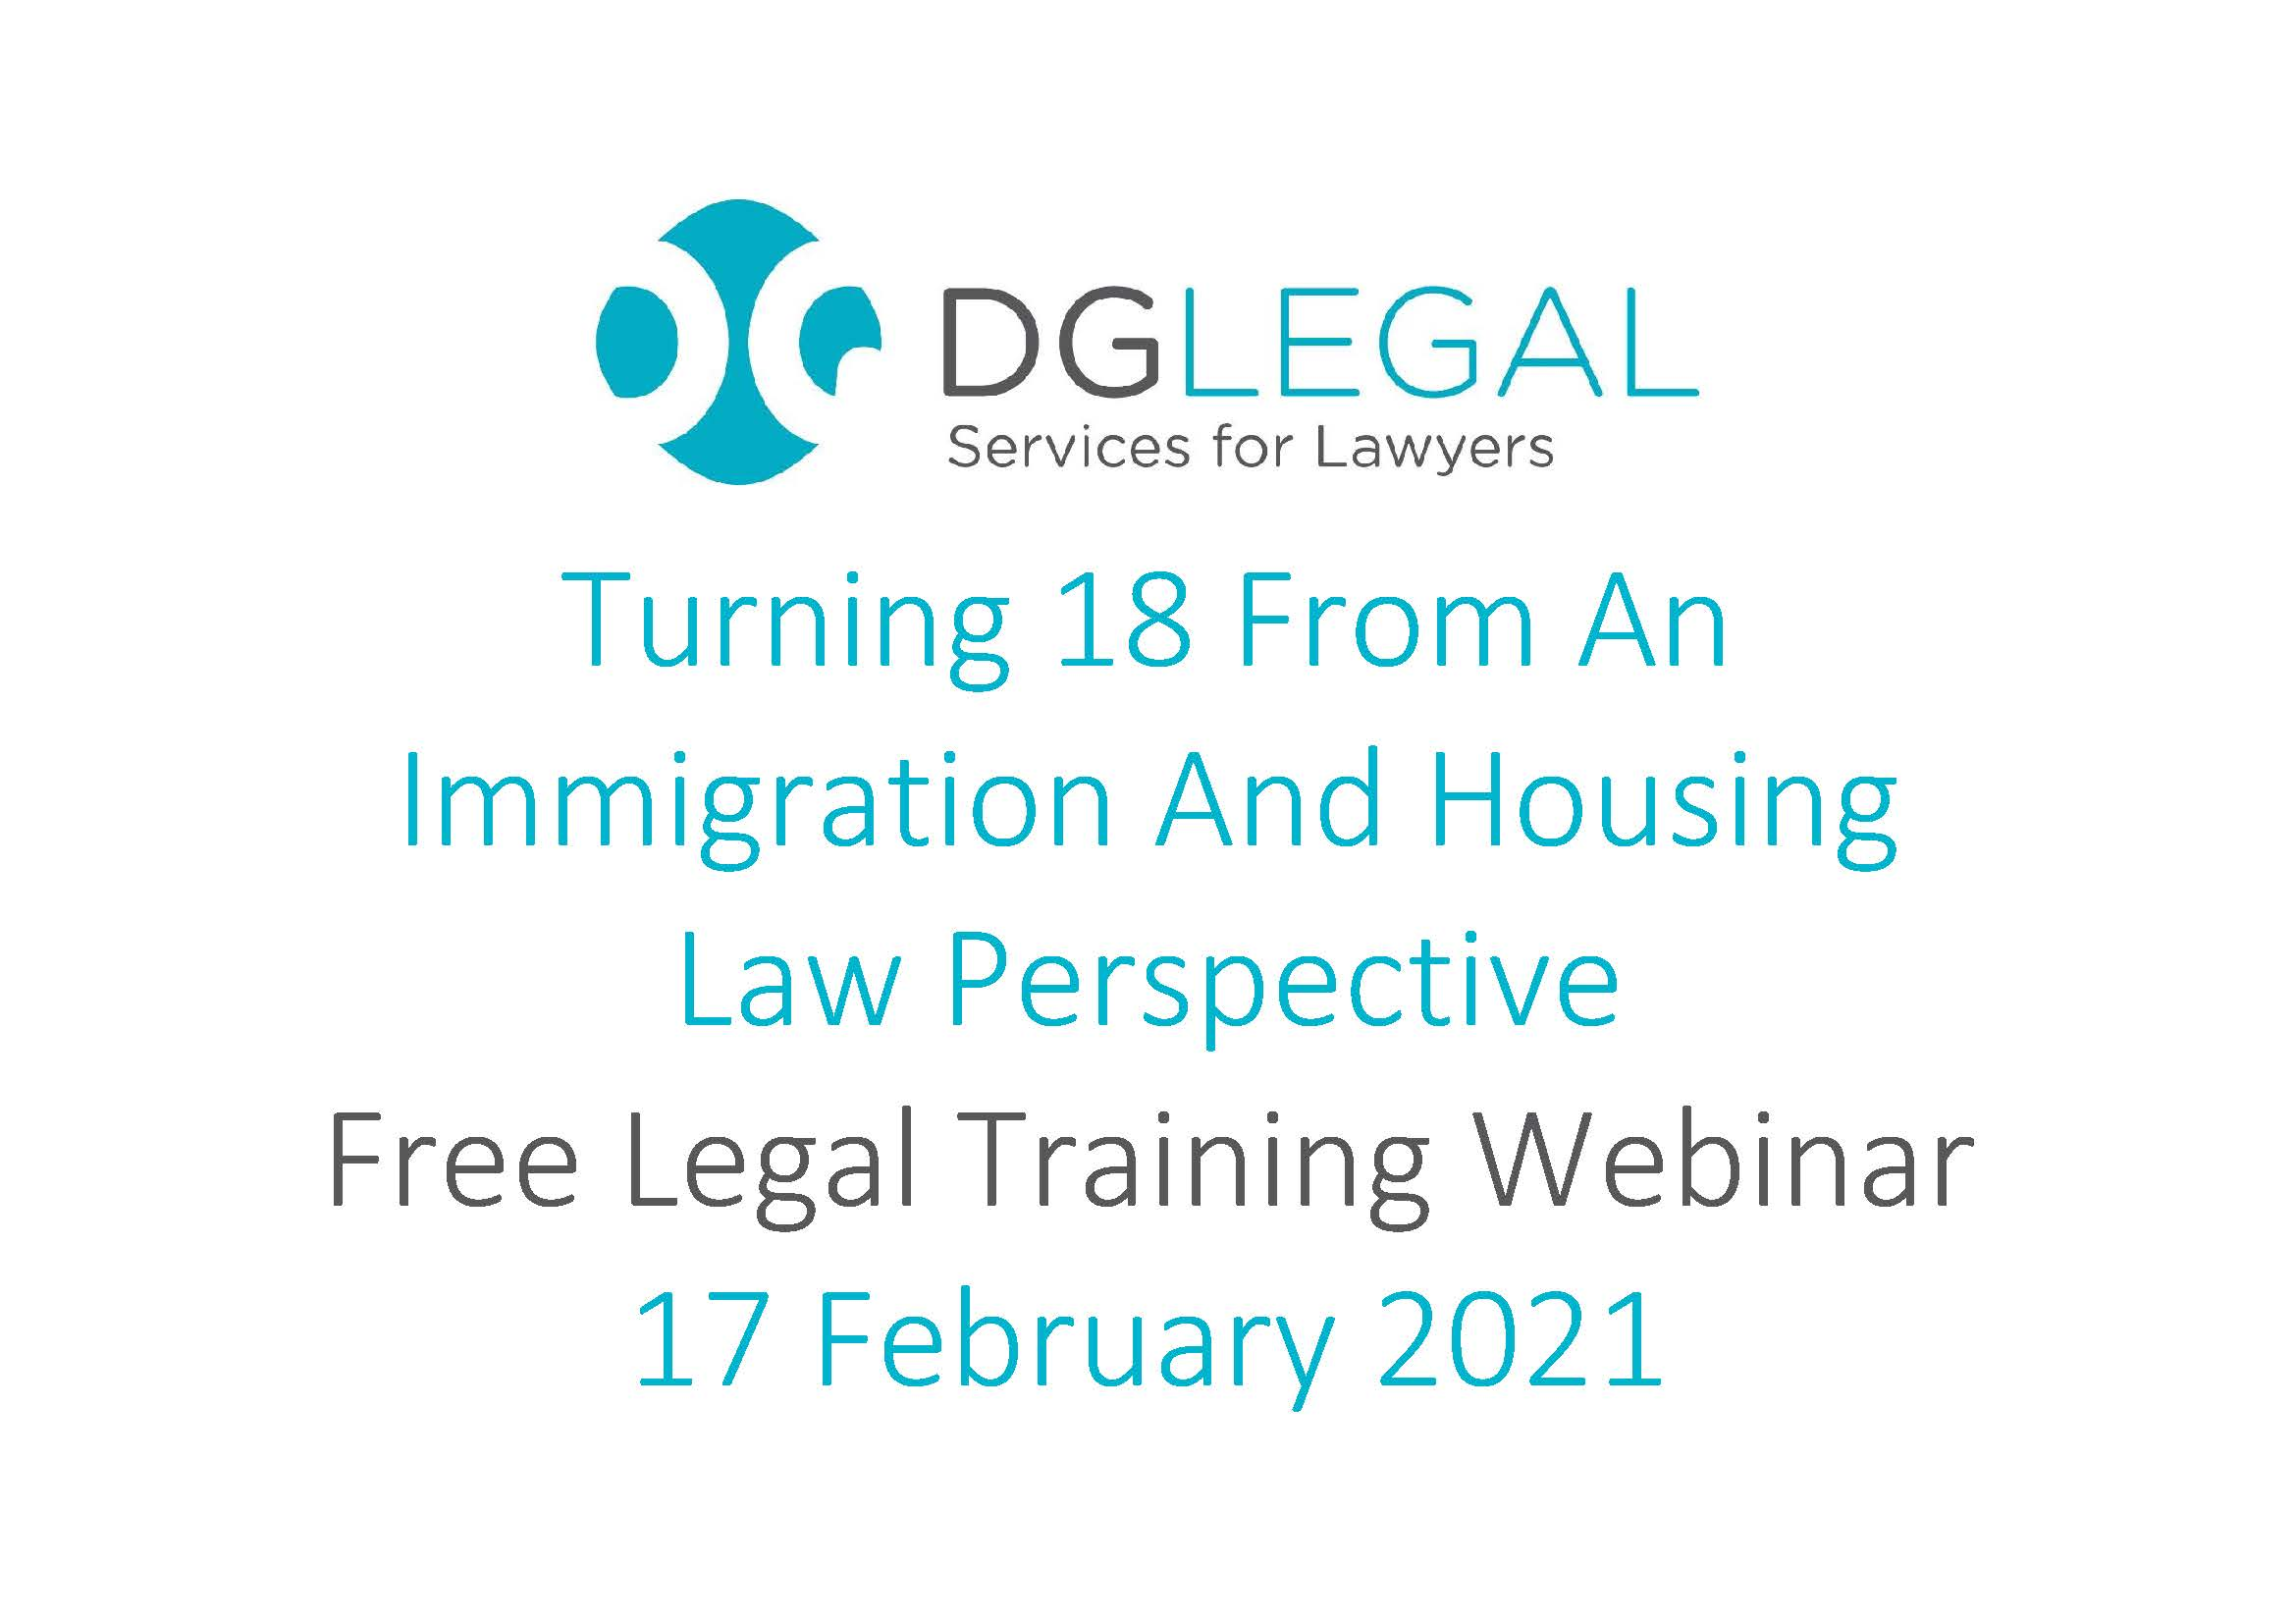 Turning 18 From An Immigration And Housing Law Perspective